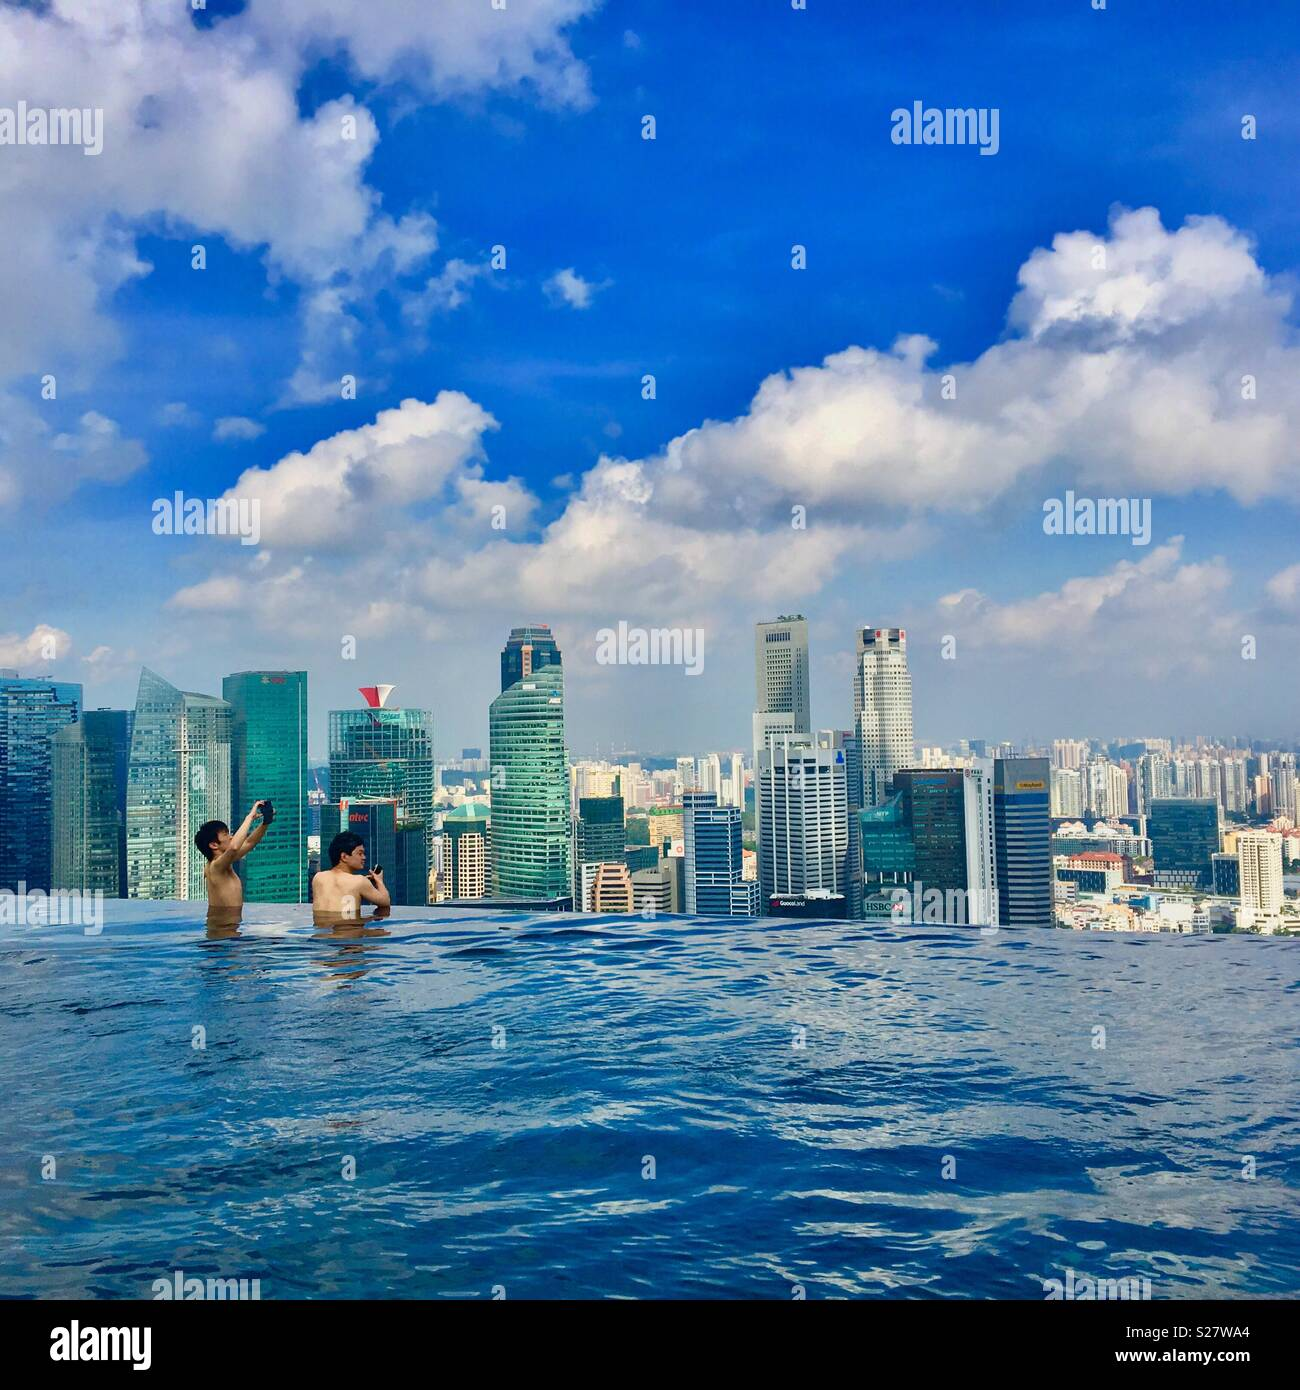 Marina Bay Sands Hotel pool in Singapore with two men taking photos and skyscrapers in background - Stock Image